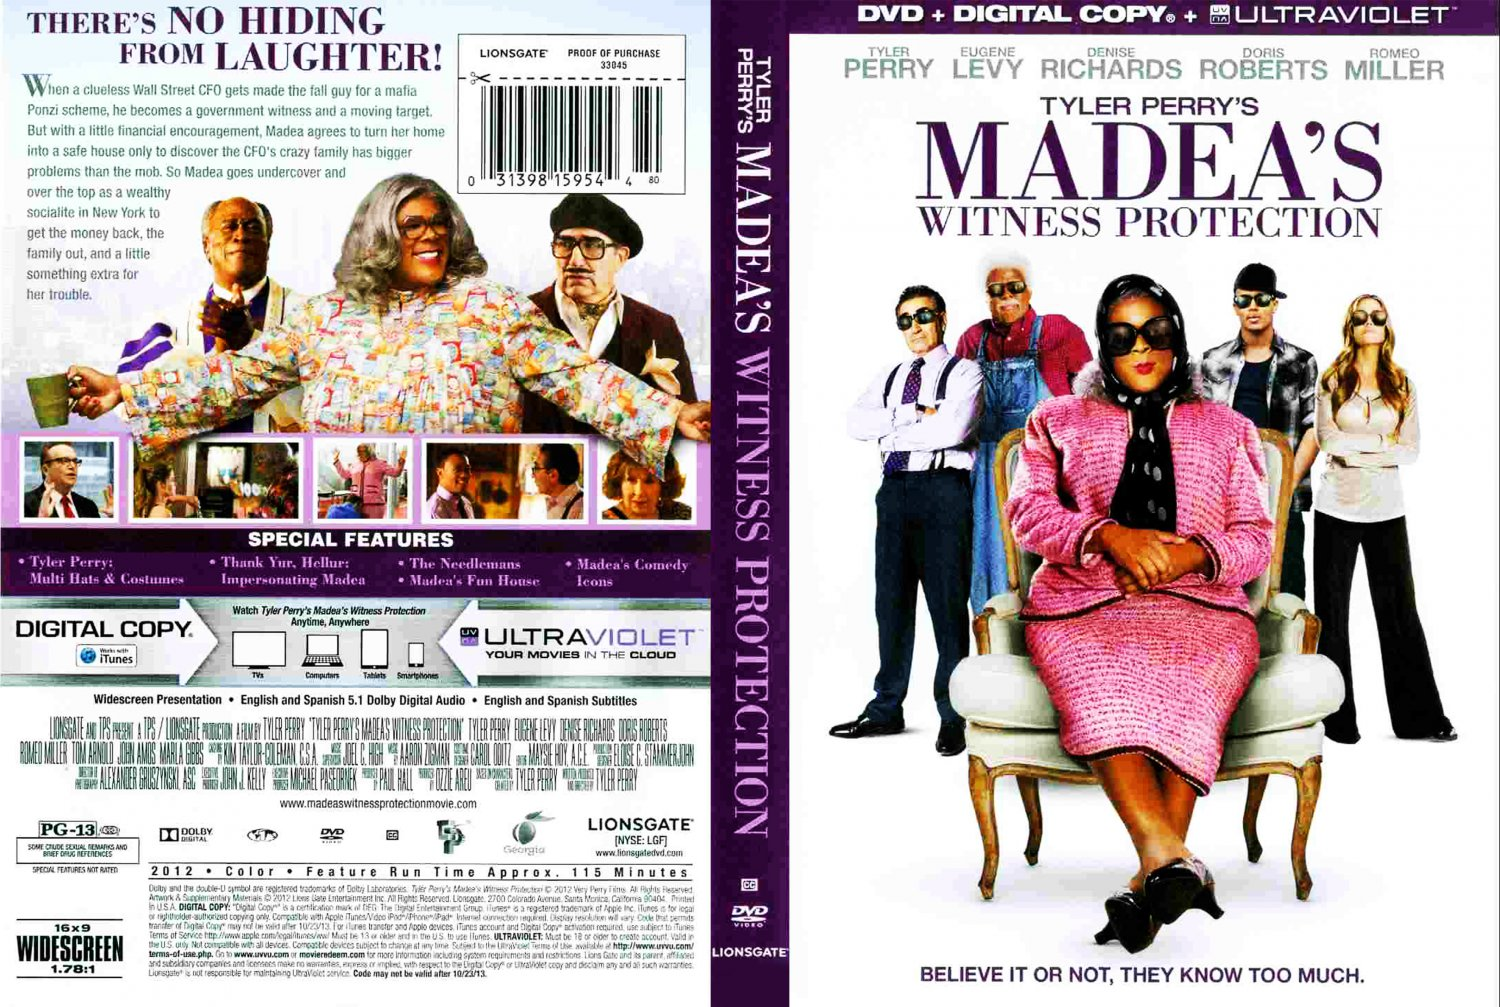 madeas witness protection dvd cover -#main